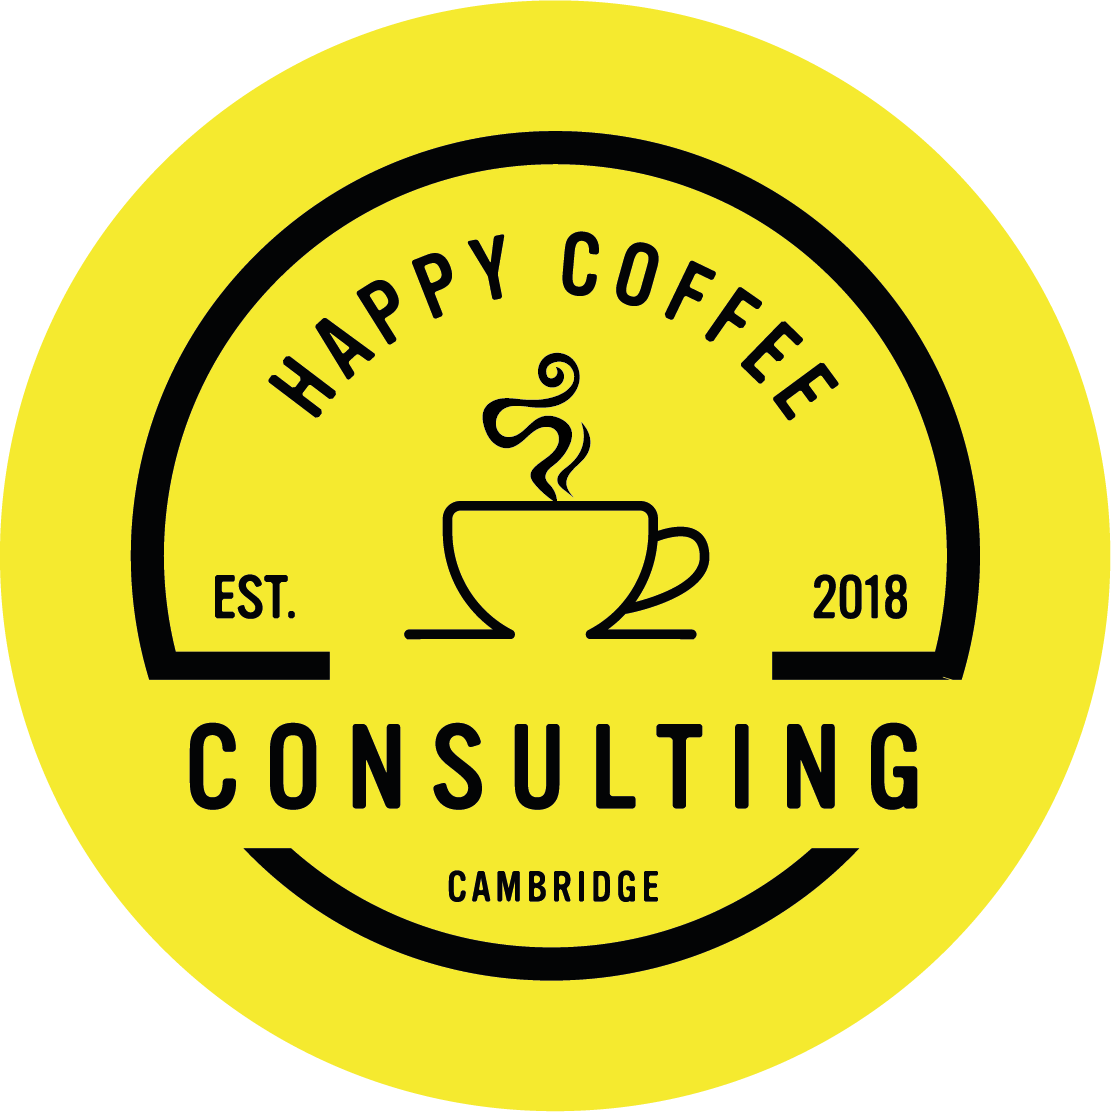 Happy Coffee Consulting HOME #happyCoffee